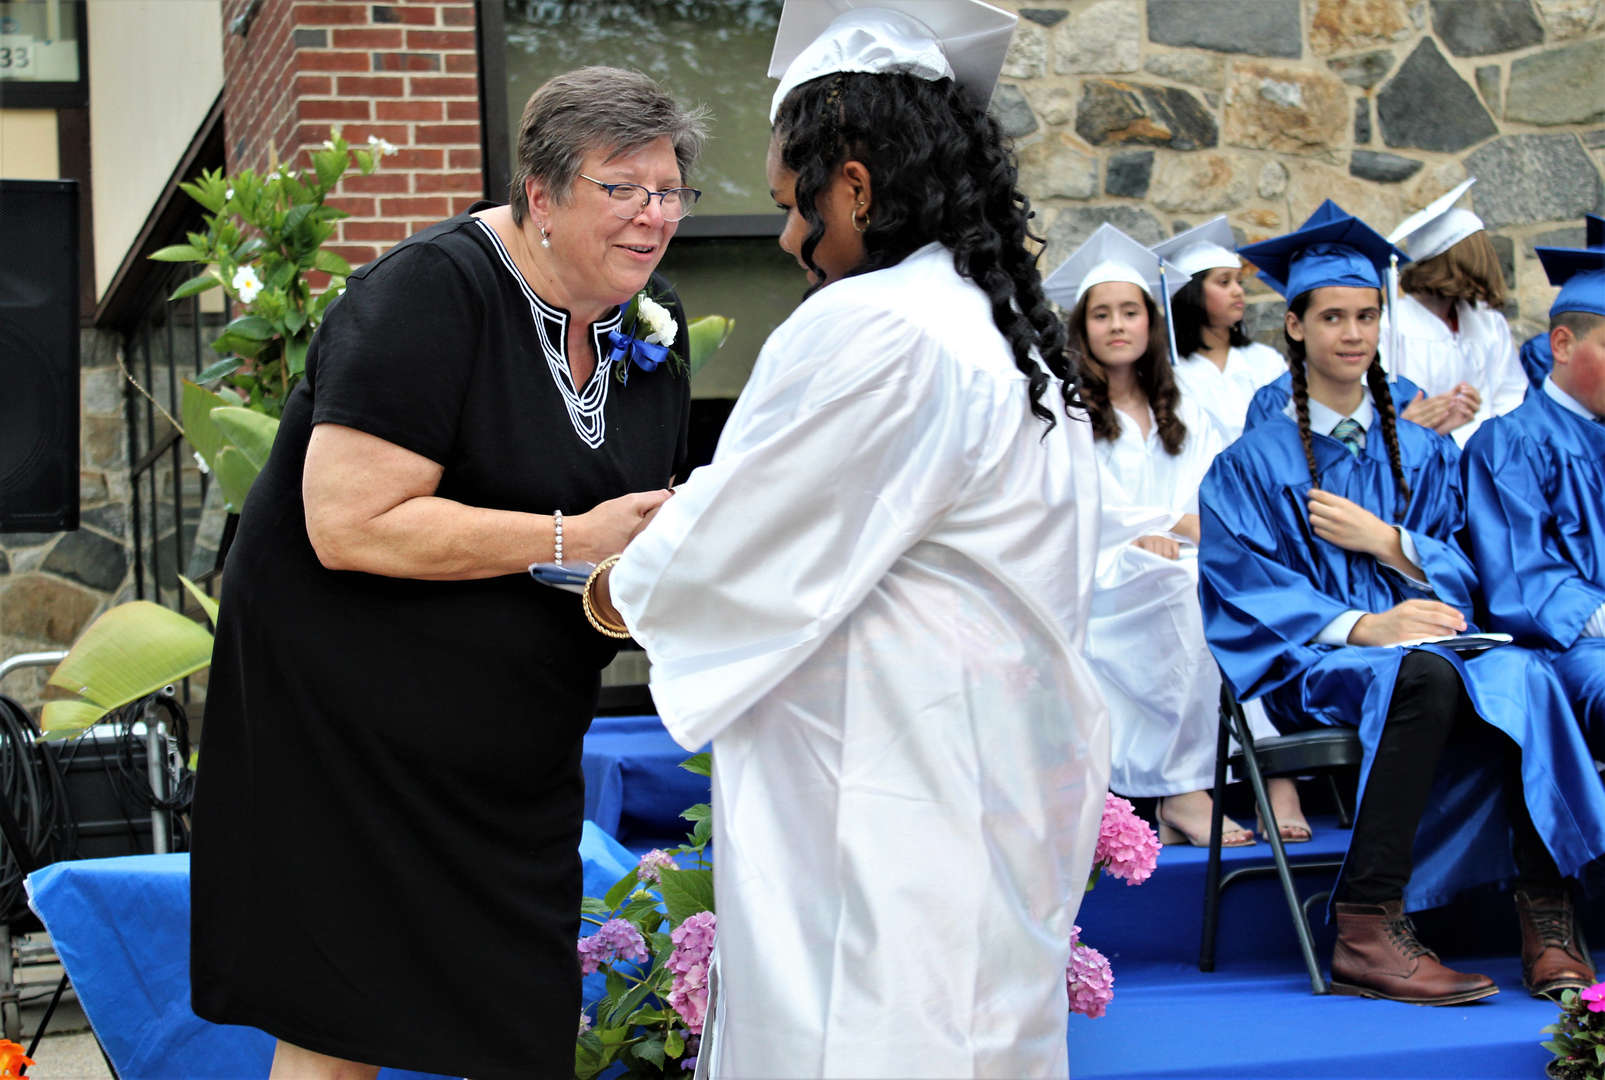 Outgoing Superintendent Carol Conklin-Spillane gave out some of the diplomas at the ceremony.